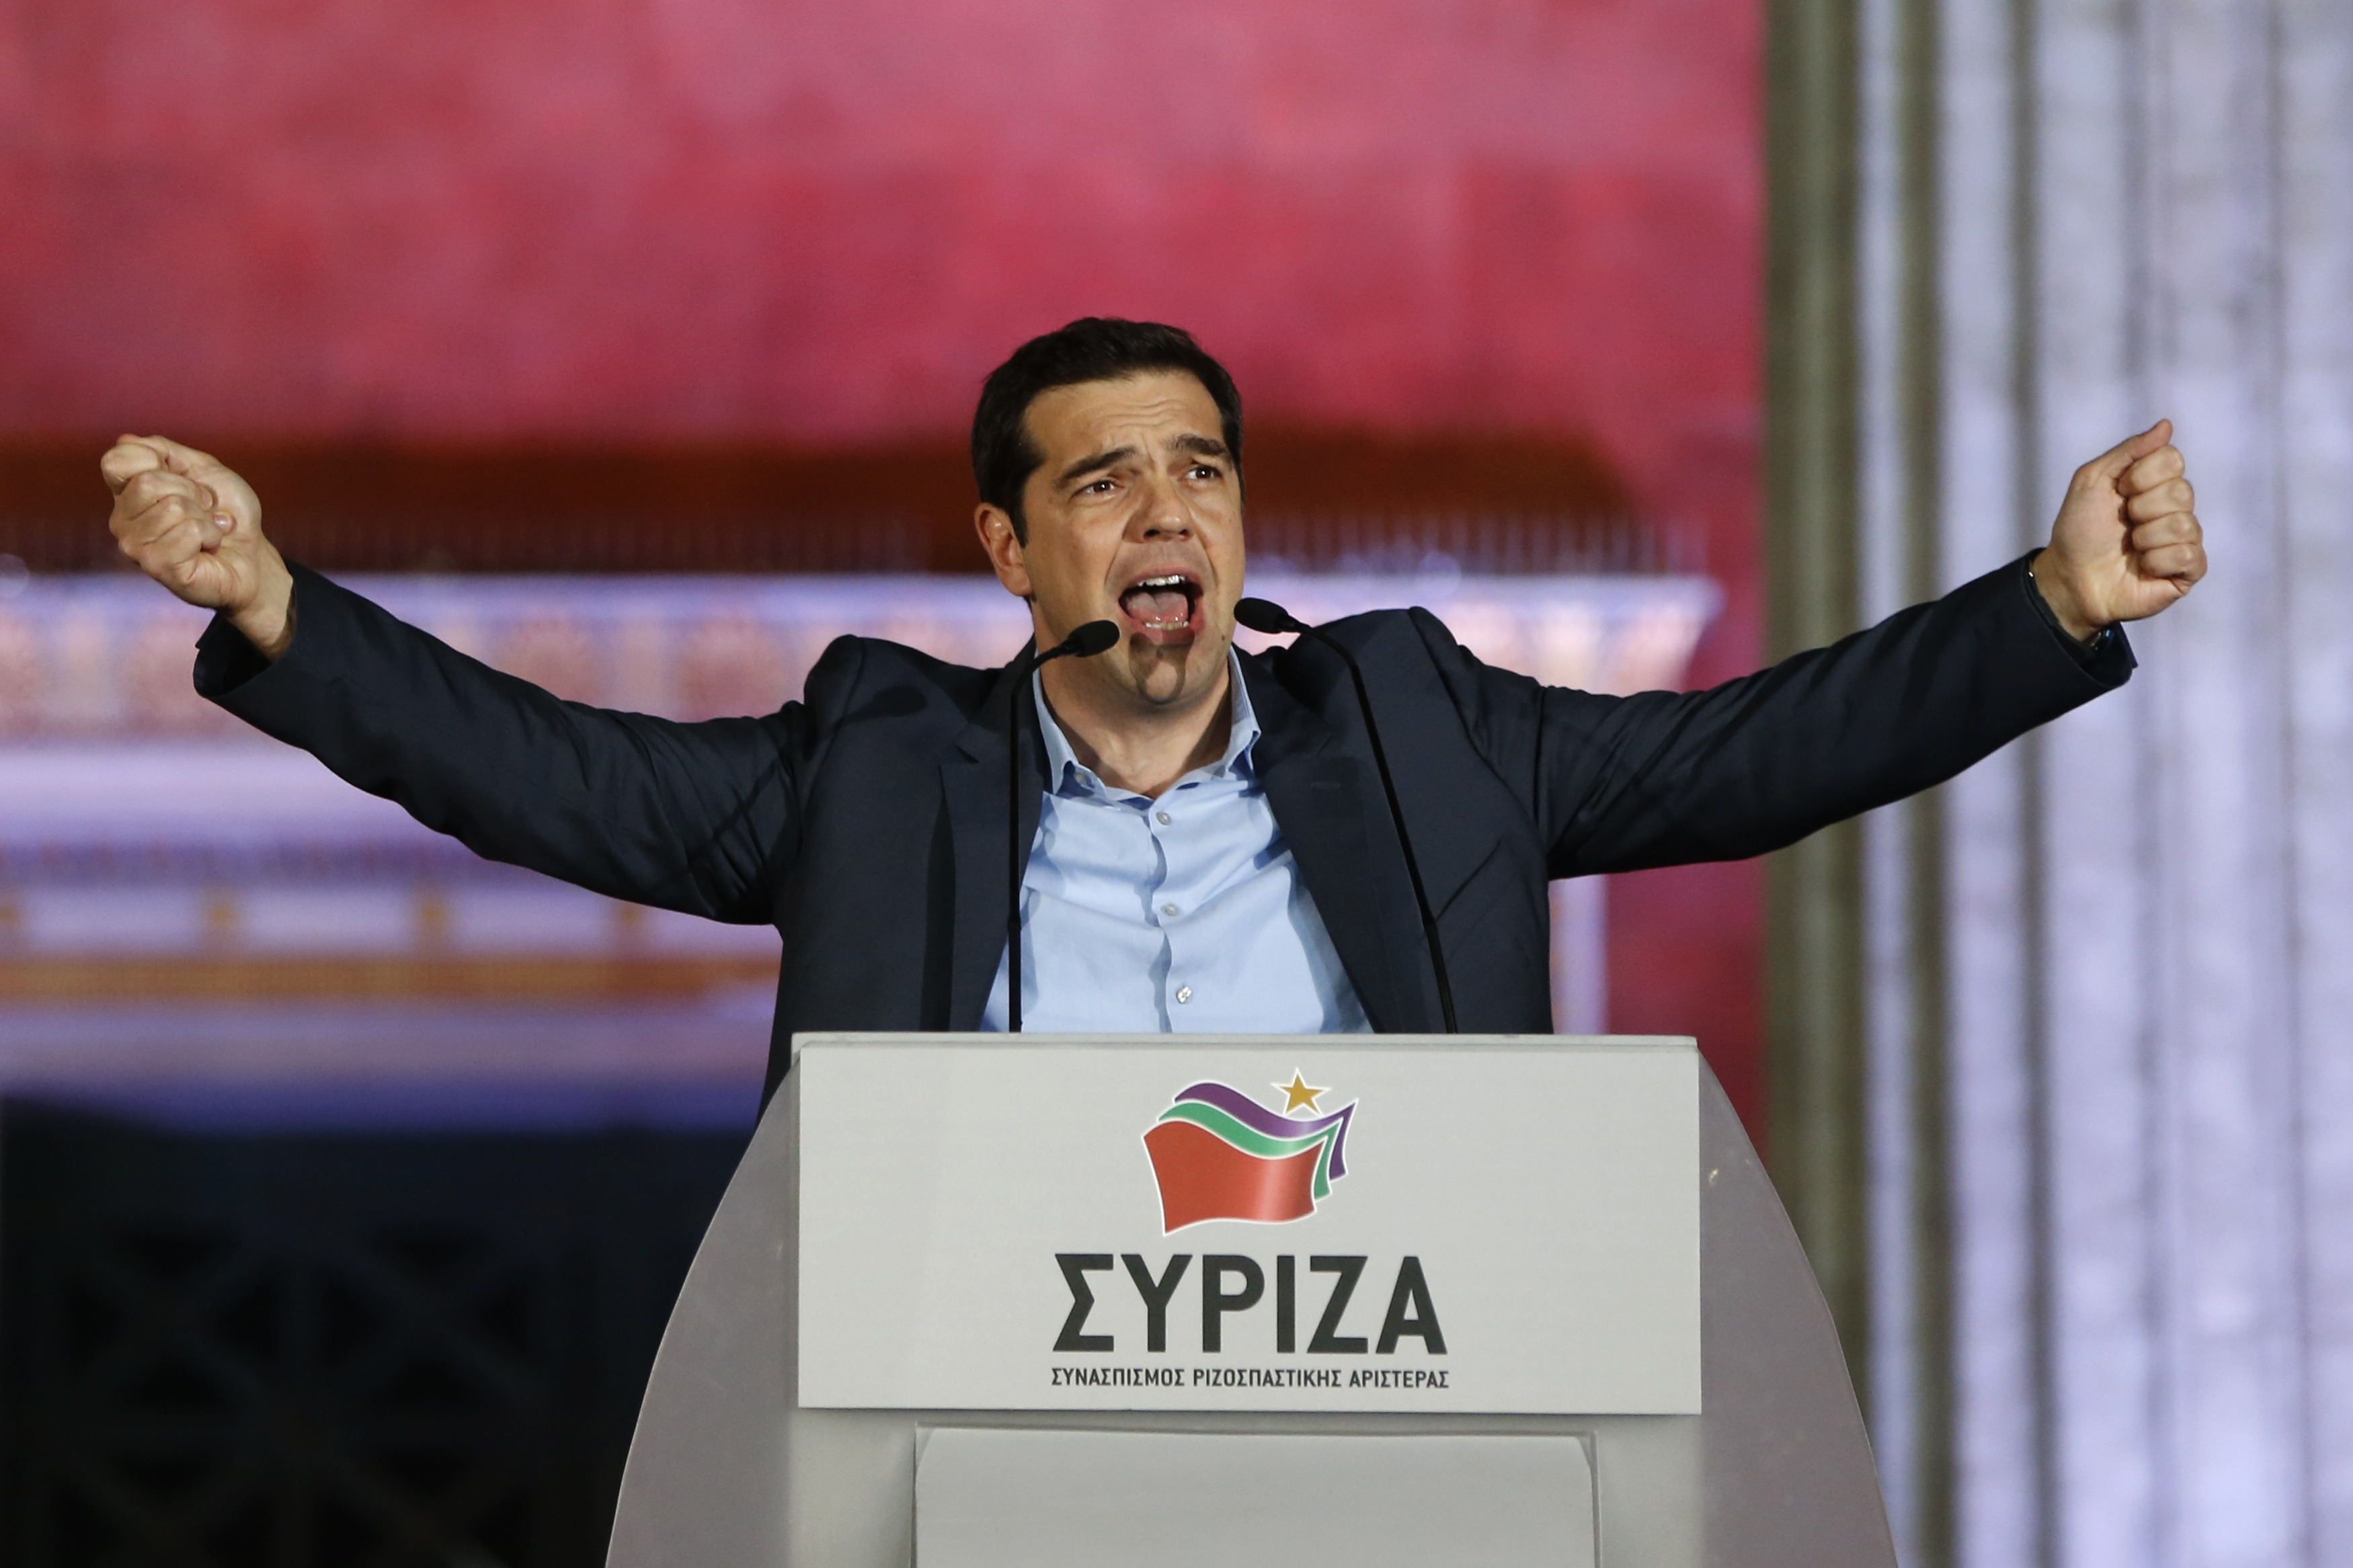 "The head of radical leftist Syriza party Alexis Tsipras speaks to supporters after winning the elections in Athens January 25, 2015. Tsipras promised on Sunday that five years of austerity, ""humiliation and suffering"" imposed by international creditors were over after his Syriza party swept to victory in a snap election on Sunday.      REUTERS/Marko Djurica    (GREECE - Tags: POLITICS ELECTIONS)"